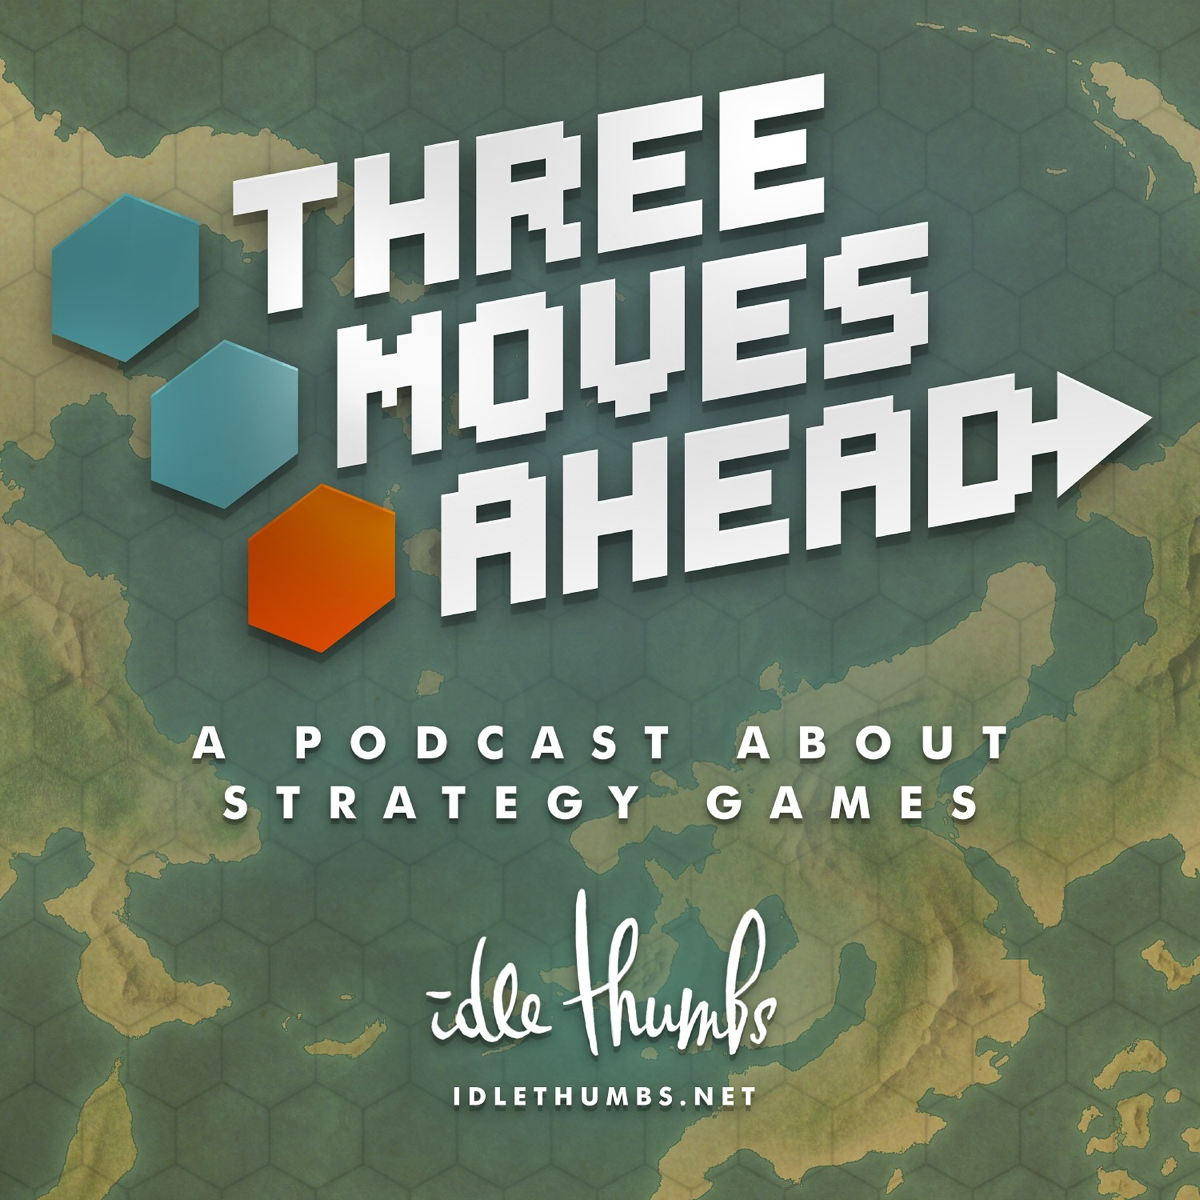 Best episodes of Three Moves Ahead | Podyssey Podcasts